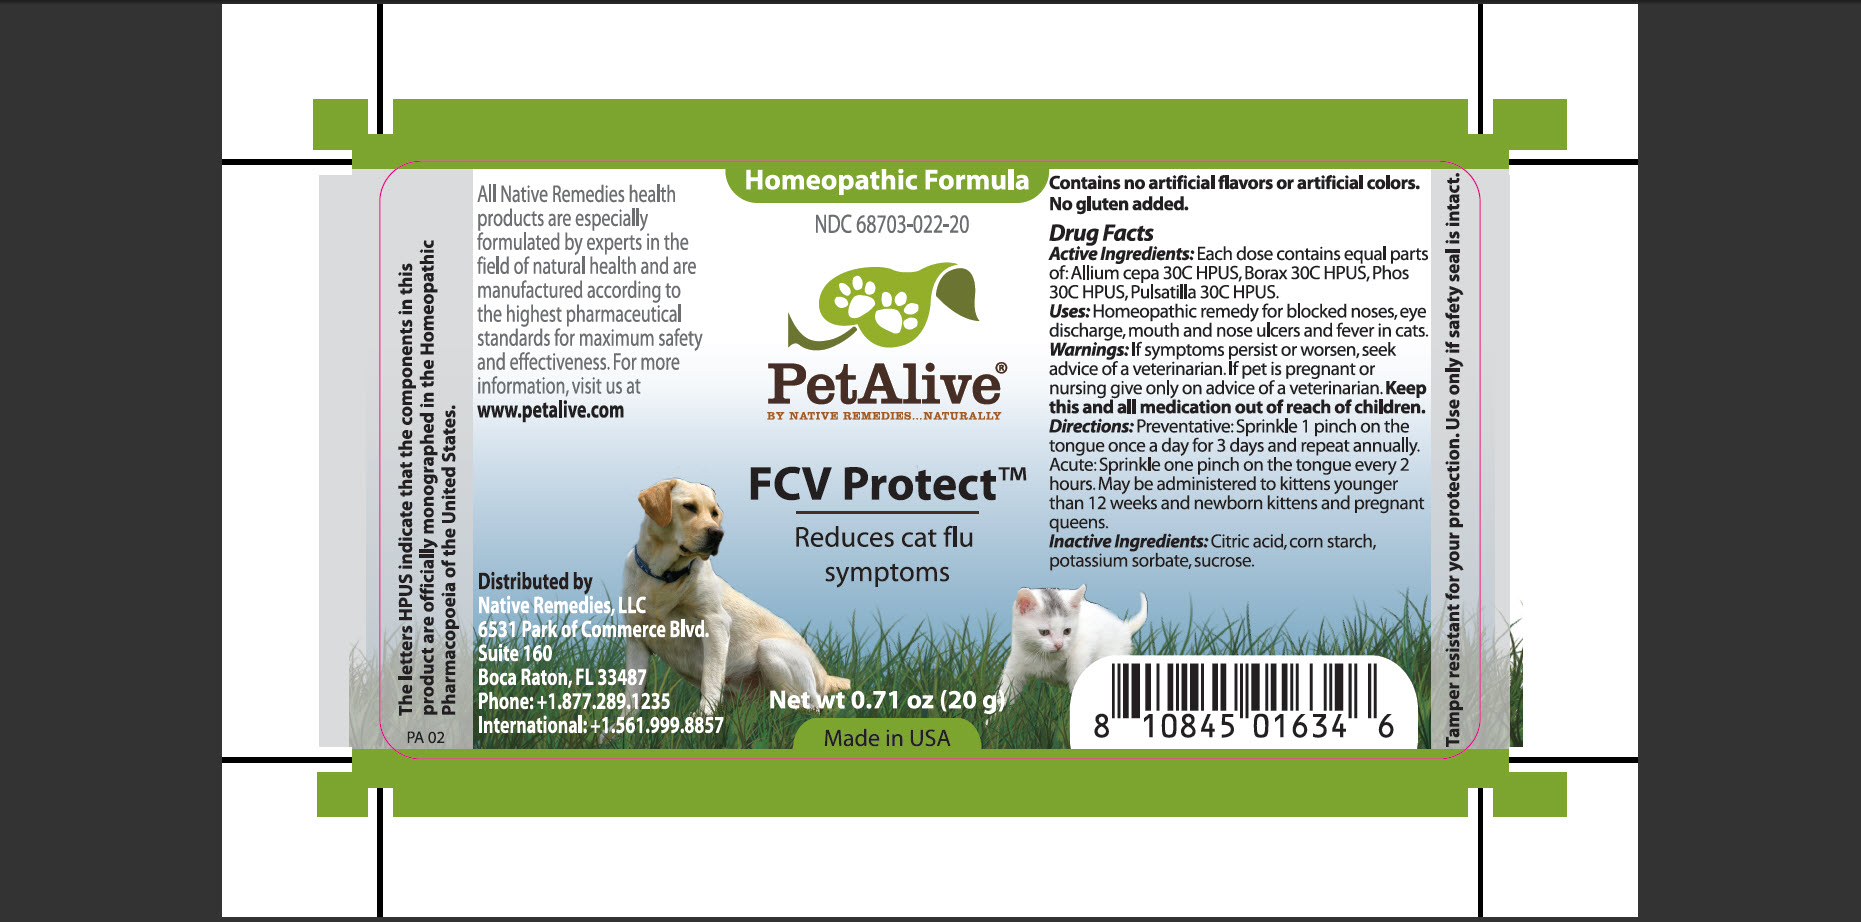 Fcv Protect (Allium Cepa, Borax, Phos, Pulsatilla, Citric Acid, Corn Starch, Potassium Sorbate, Sucrose) Granule [Native Remedies, Llc]